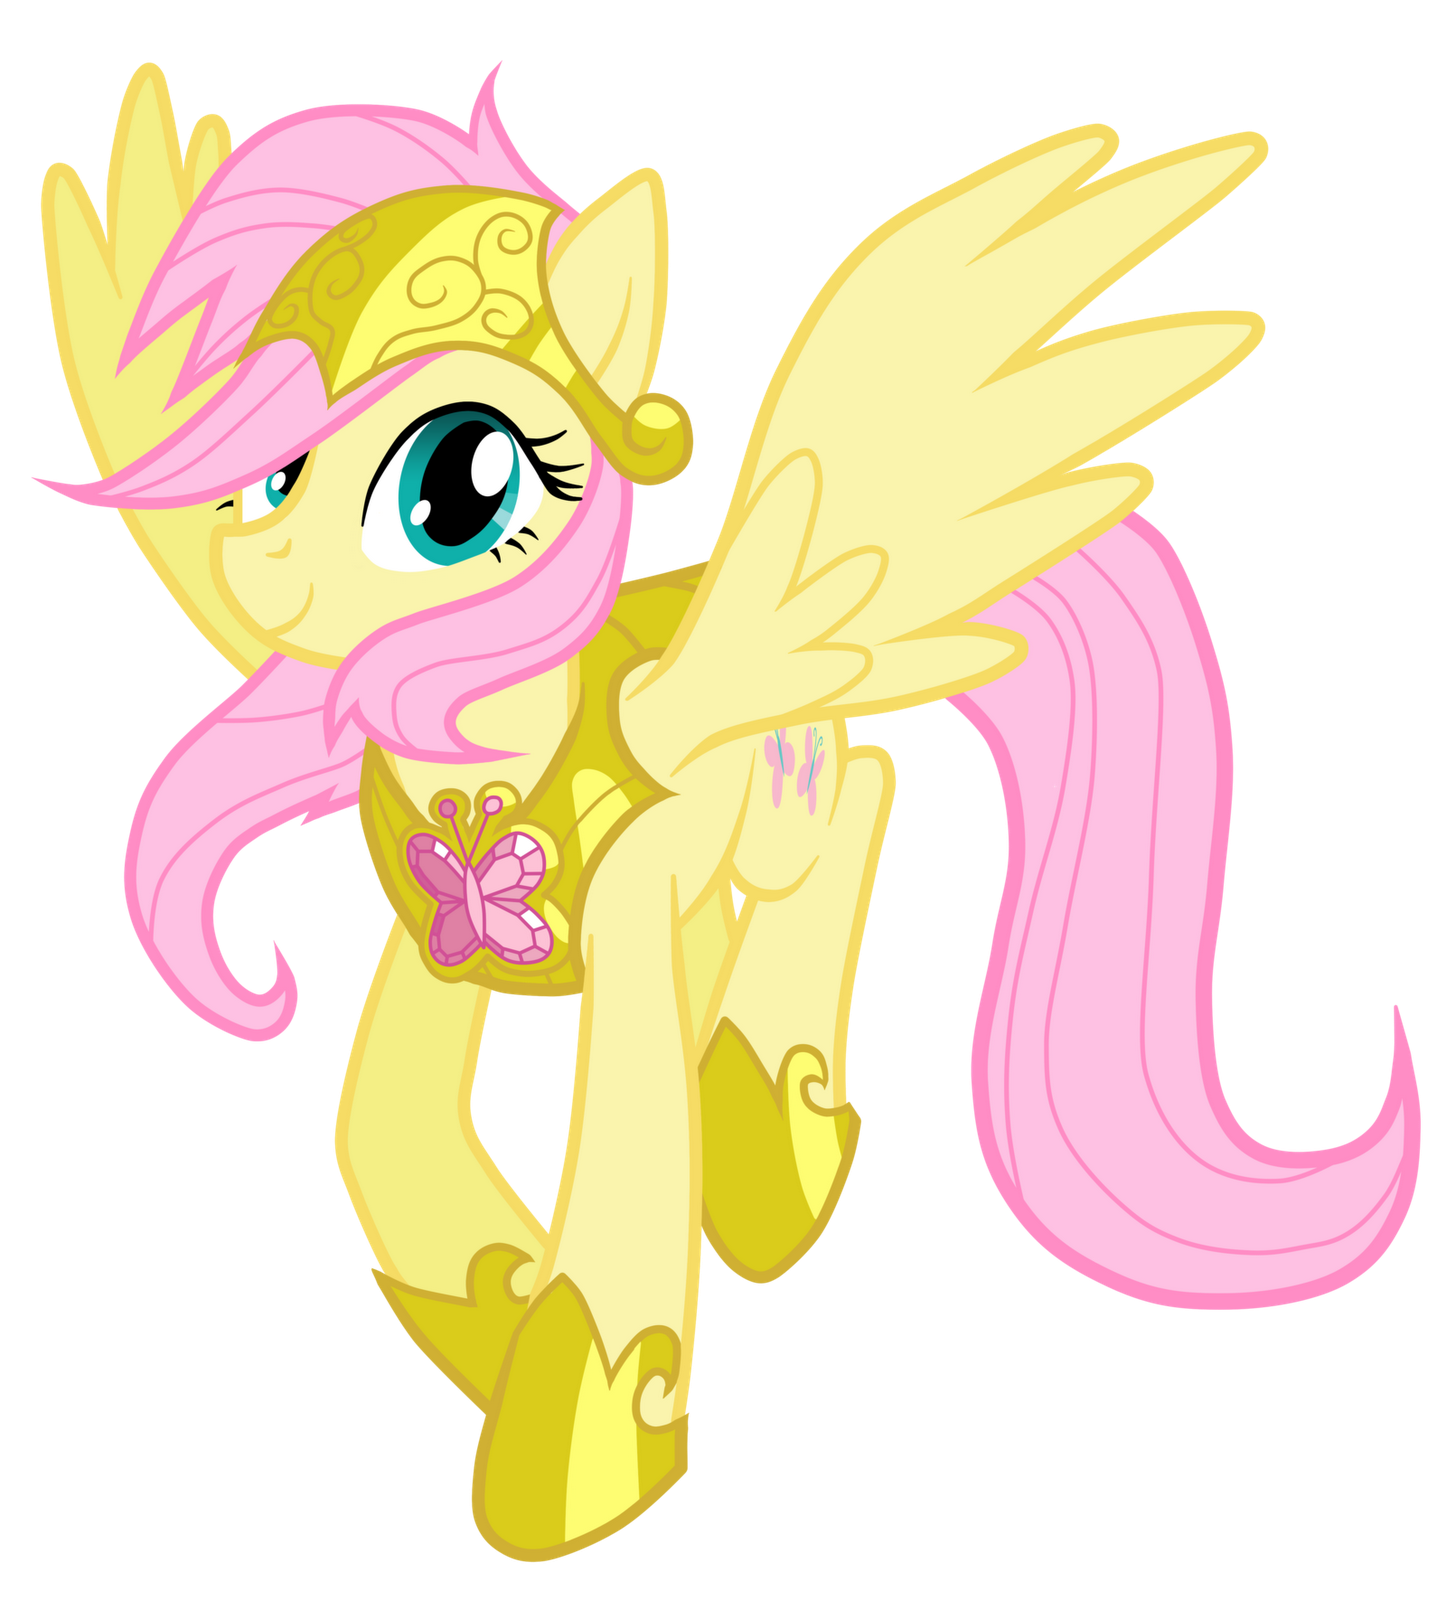 Fluttershy - Fluttershy Photo (36785787) - Fanpop - Page 4